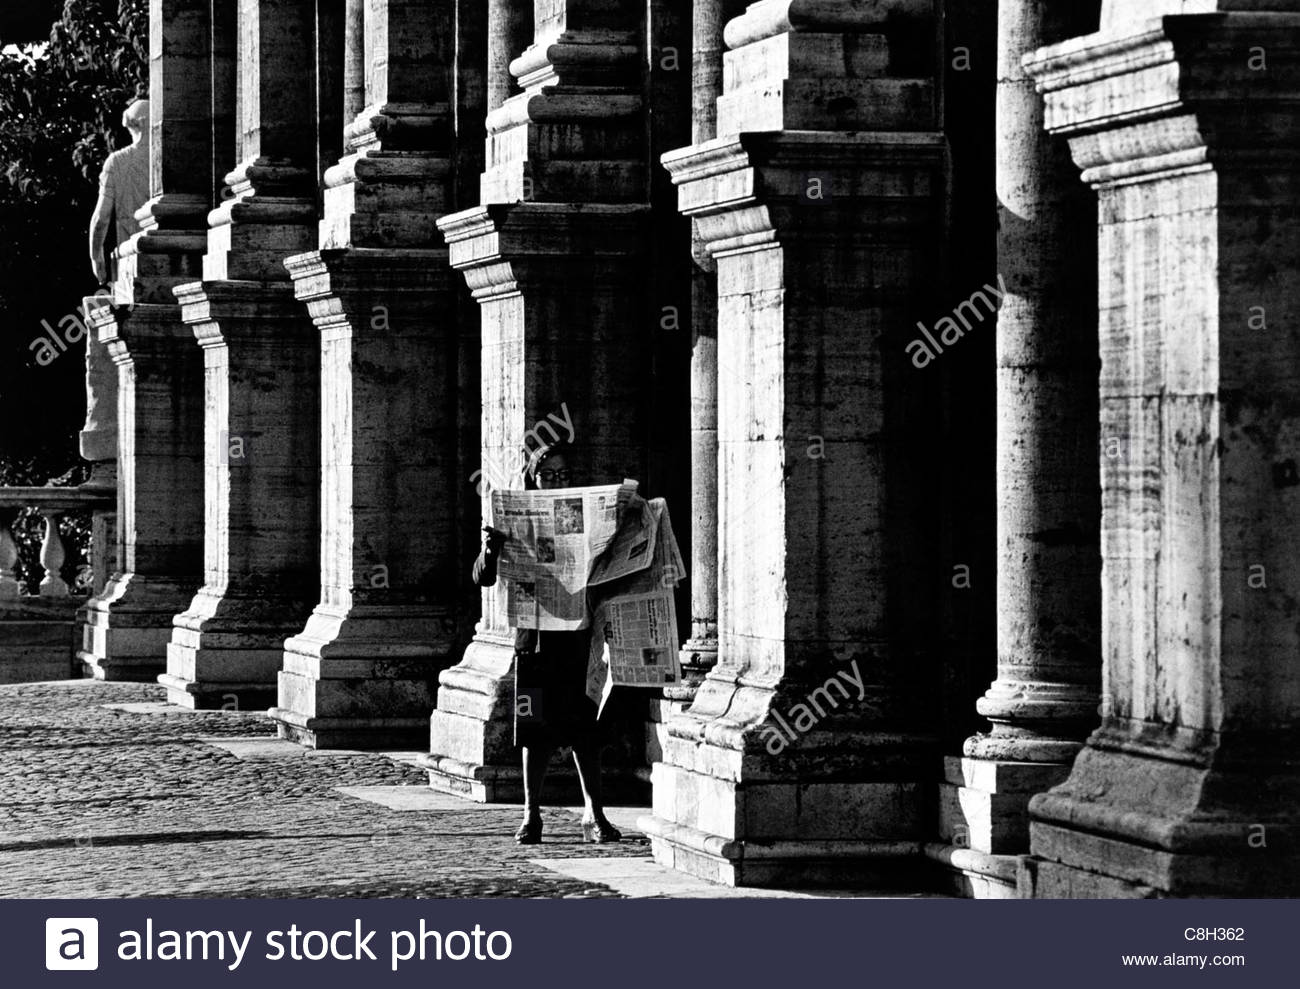 A woman reading a newspaper in front of the Palazzo Nuovo in Rome. - Stock Image